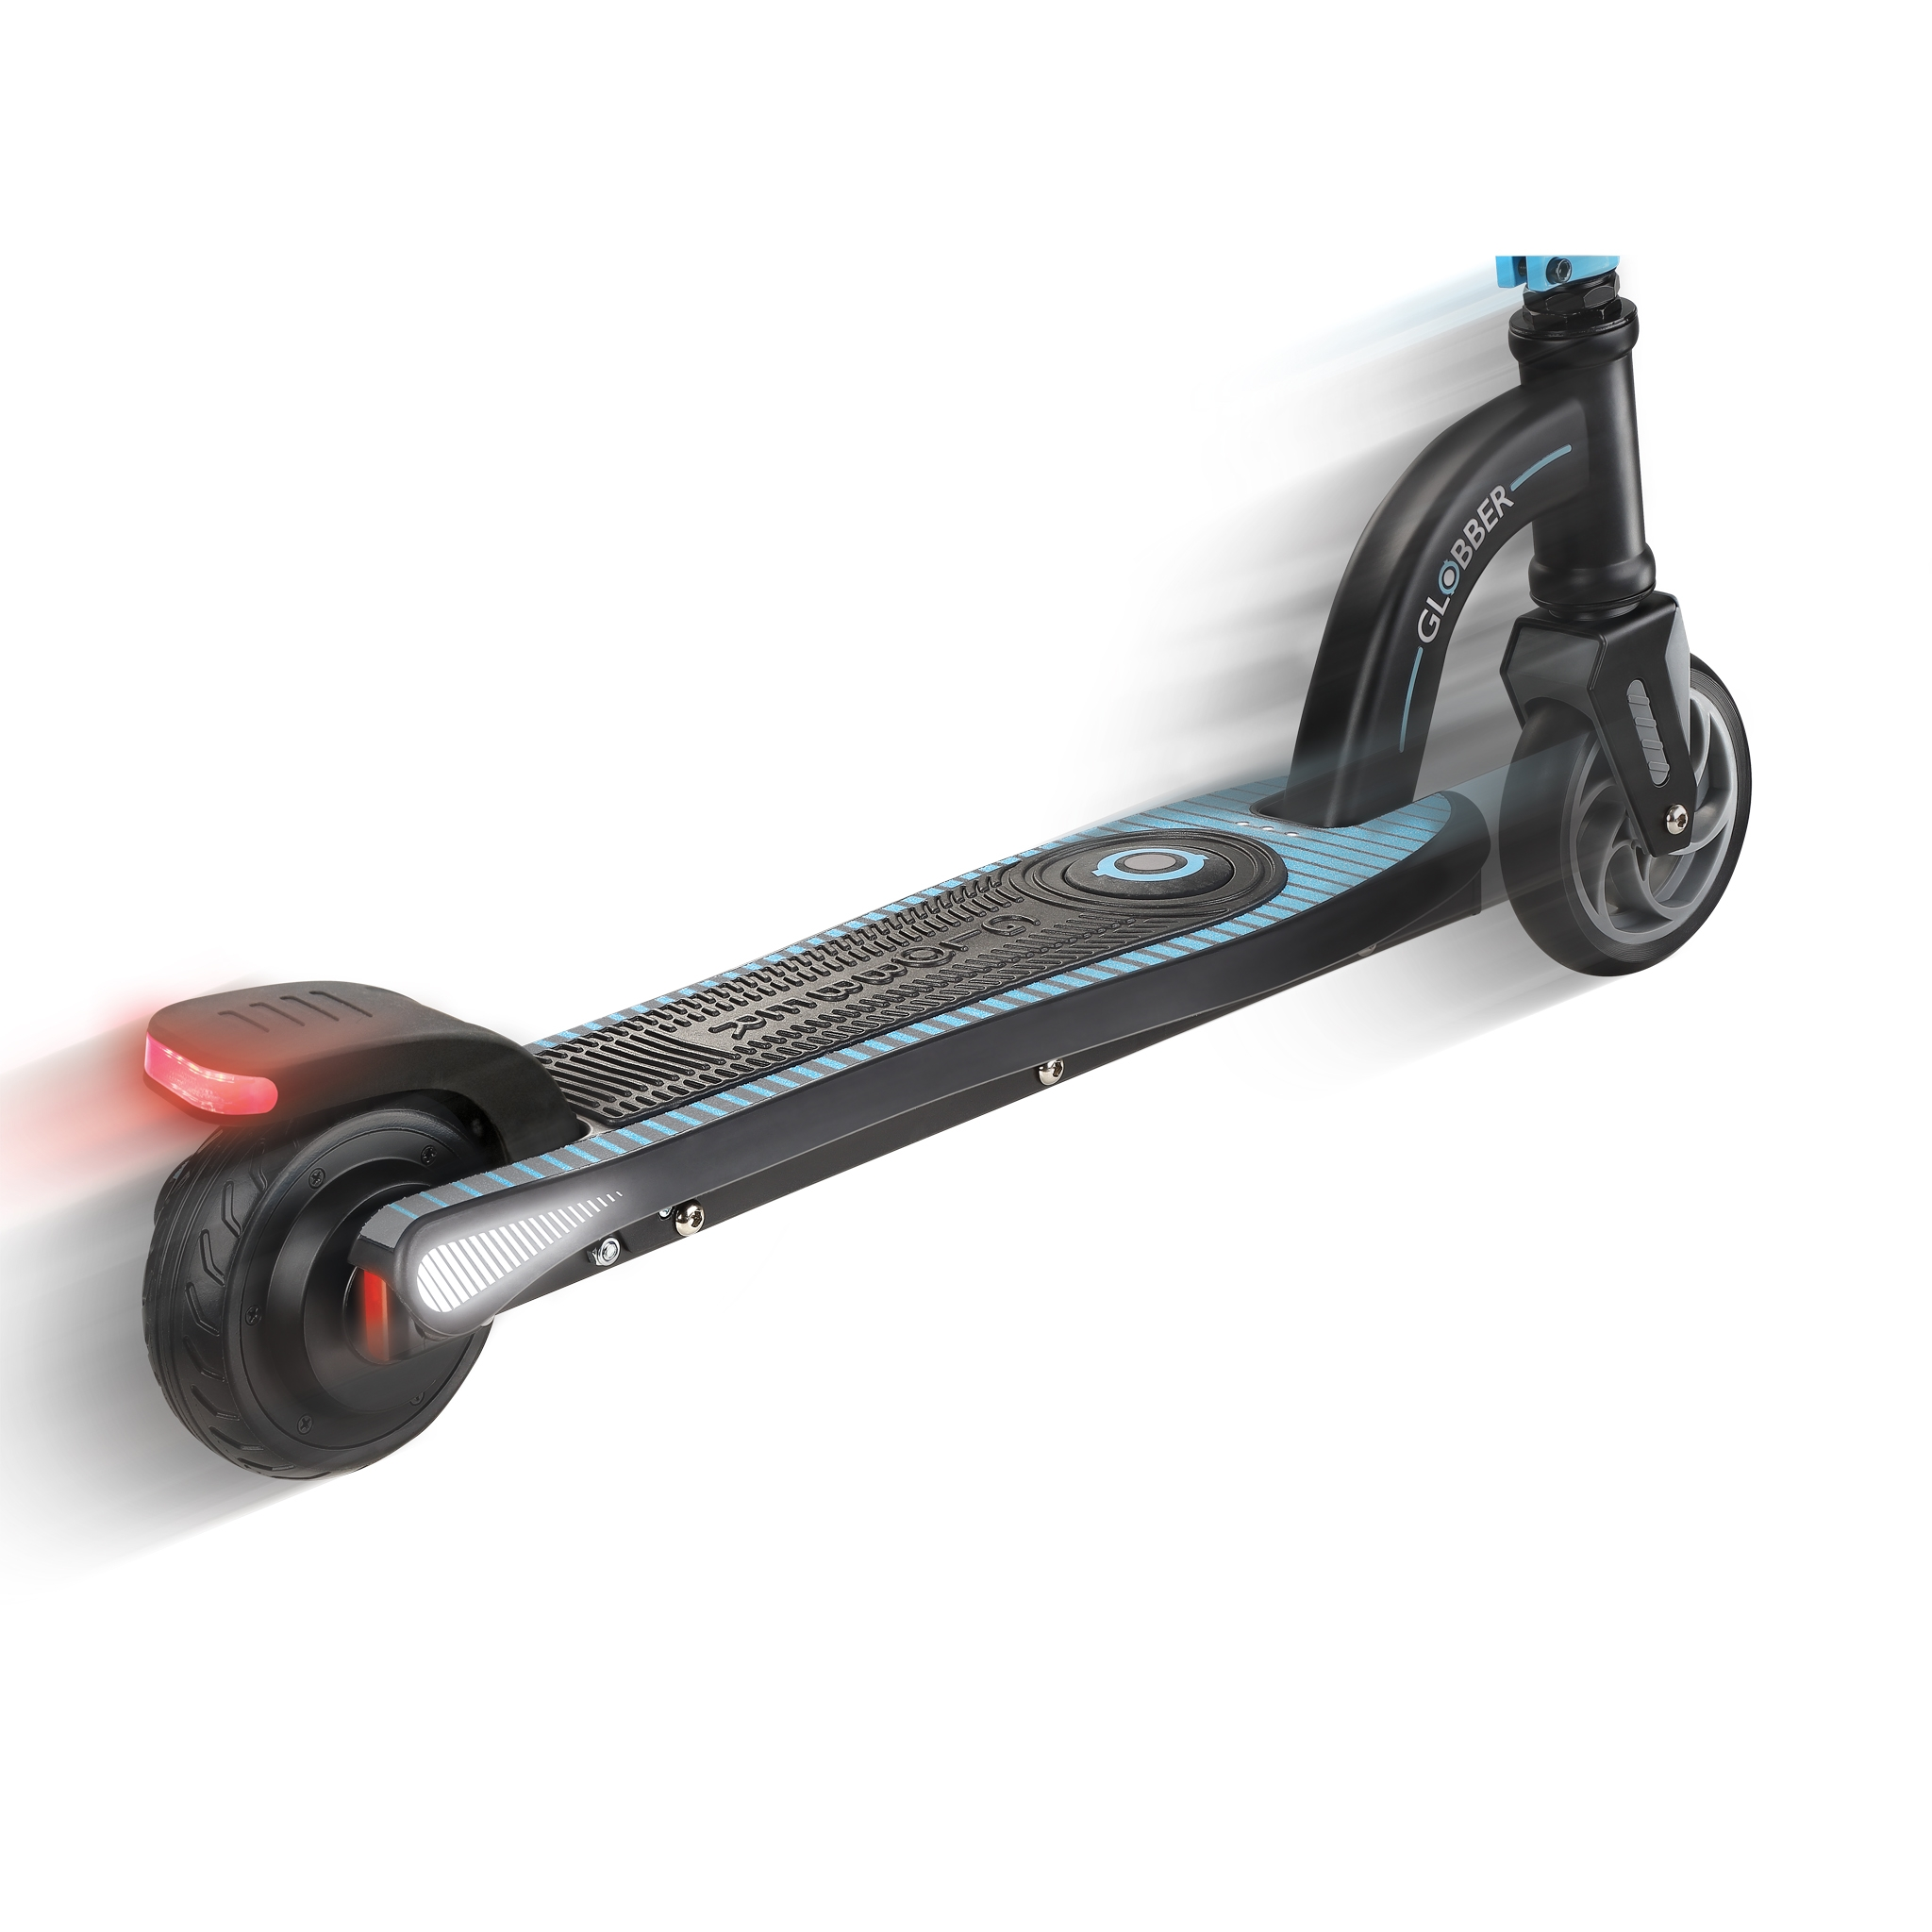 Globber-ONE-K-E-MOTION-10-electric-scooter-for-kids-aluminium-scooter-deck-with-accelerator-pressure-sensor-sky-blue